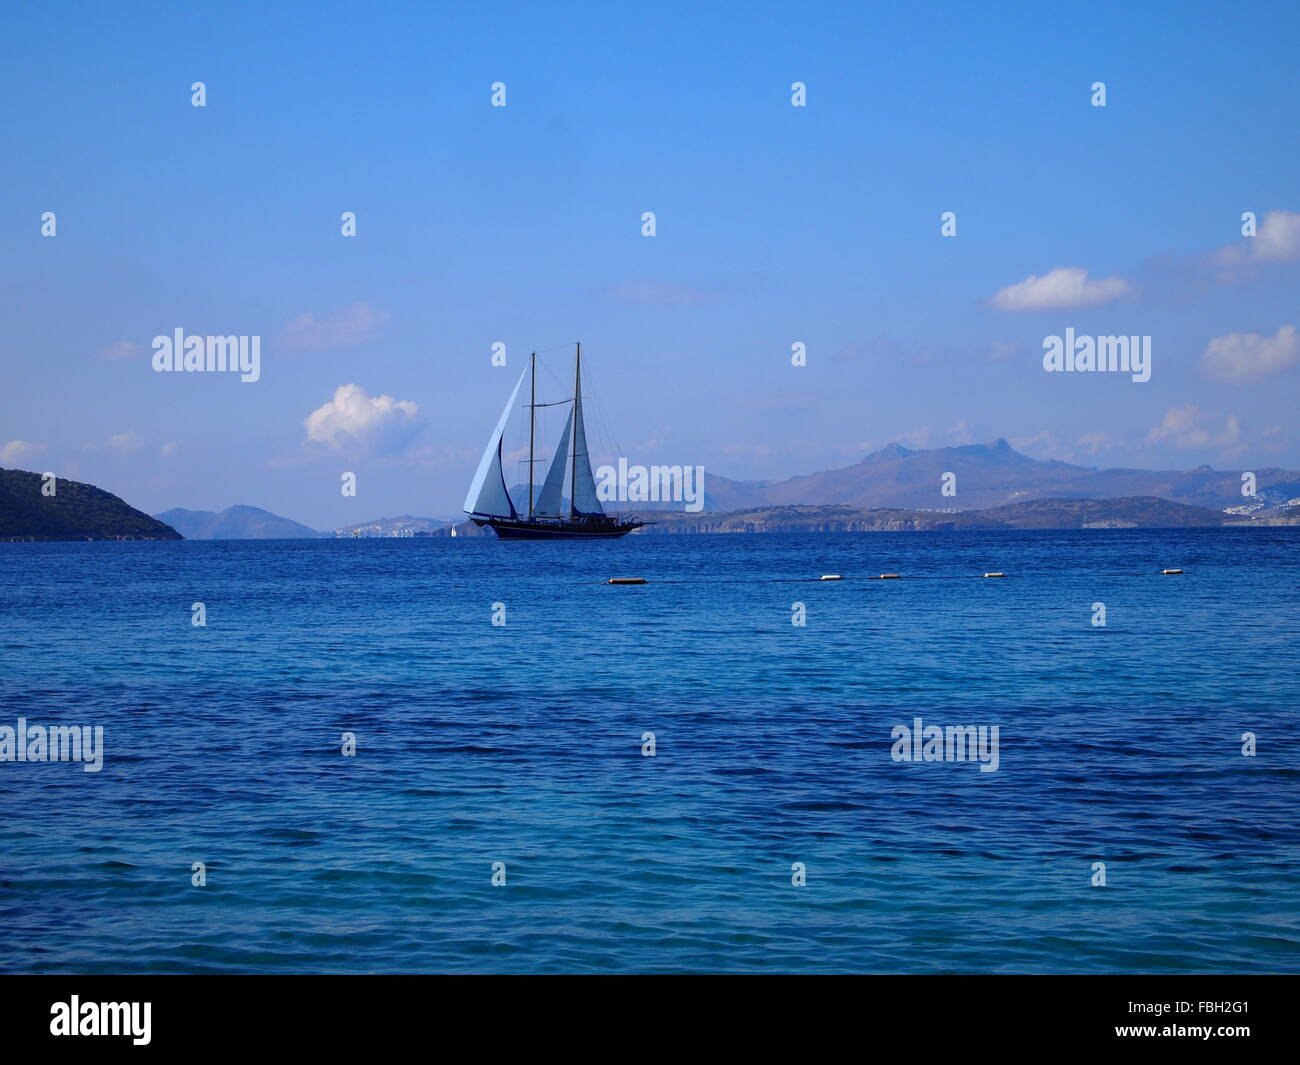 Gulet boat in the distance with blue sky background with a few white clouds and distant land. - Stock Image